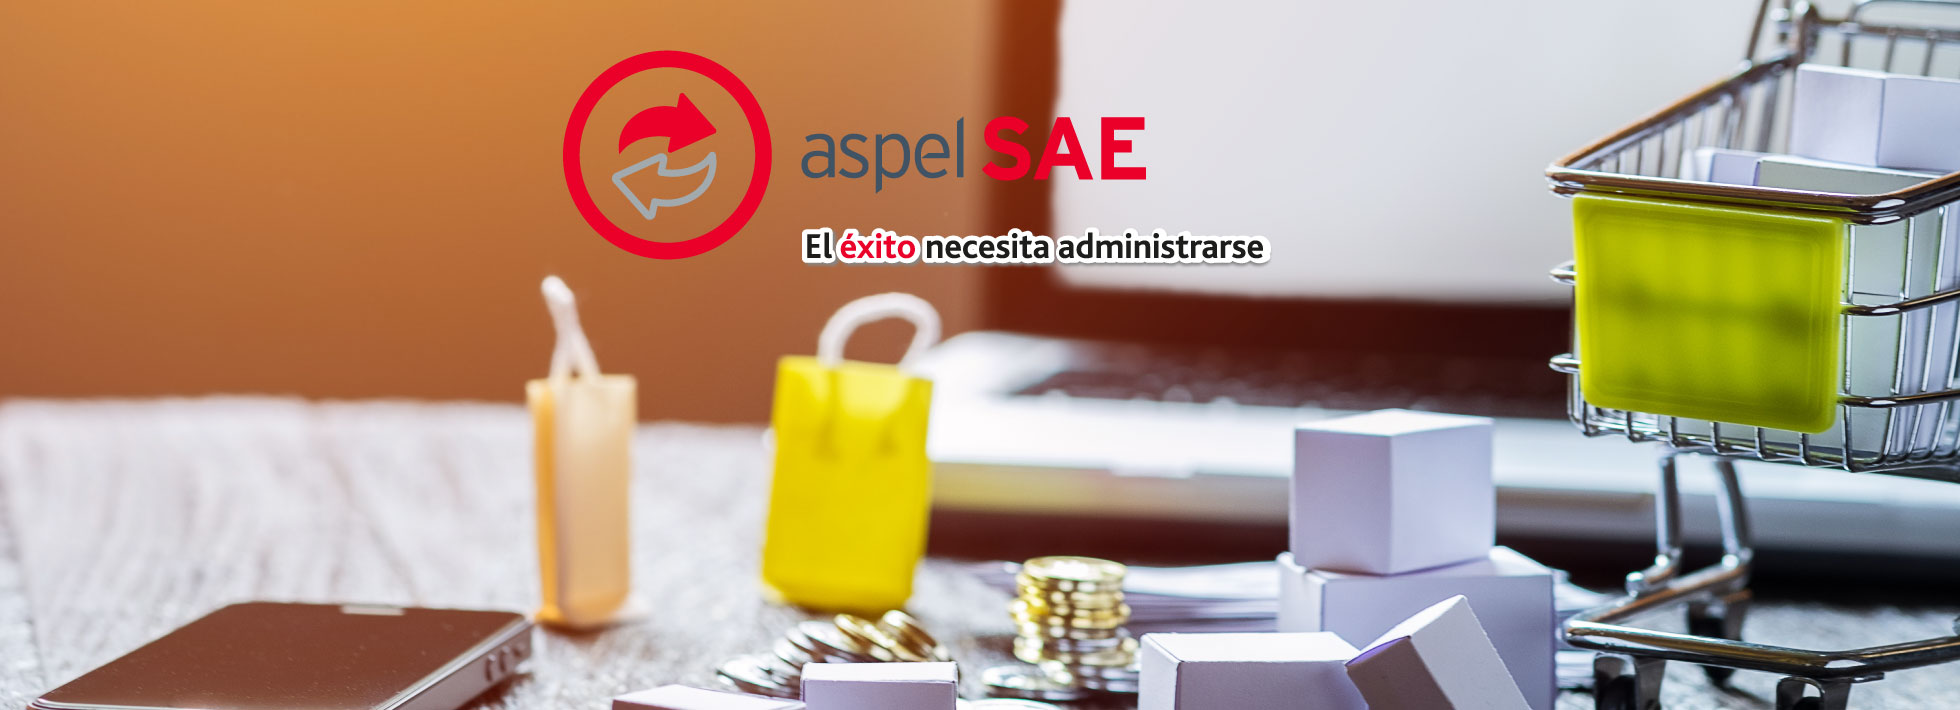 Reinstalable 05 aspel sae 8